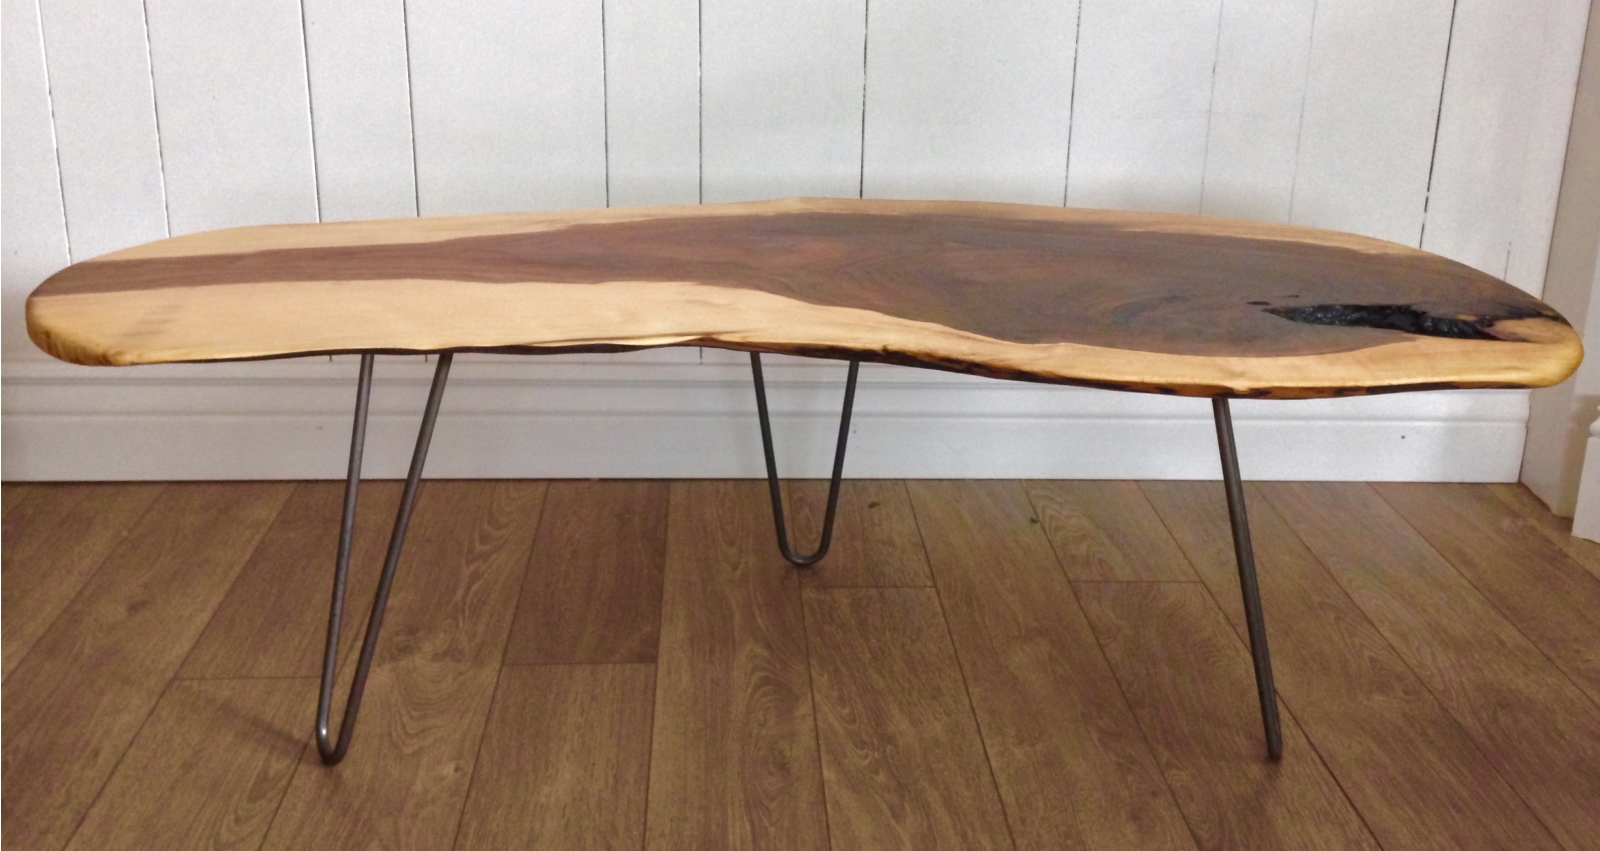 Craft Your Own Artisanal Wood Table – Connie Yang – Medium With Regard To Favorite Artisanal Dining Tables (View 14 of 25)